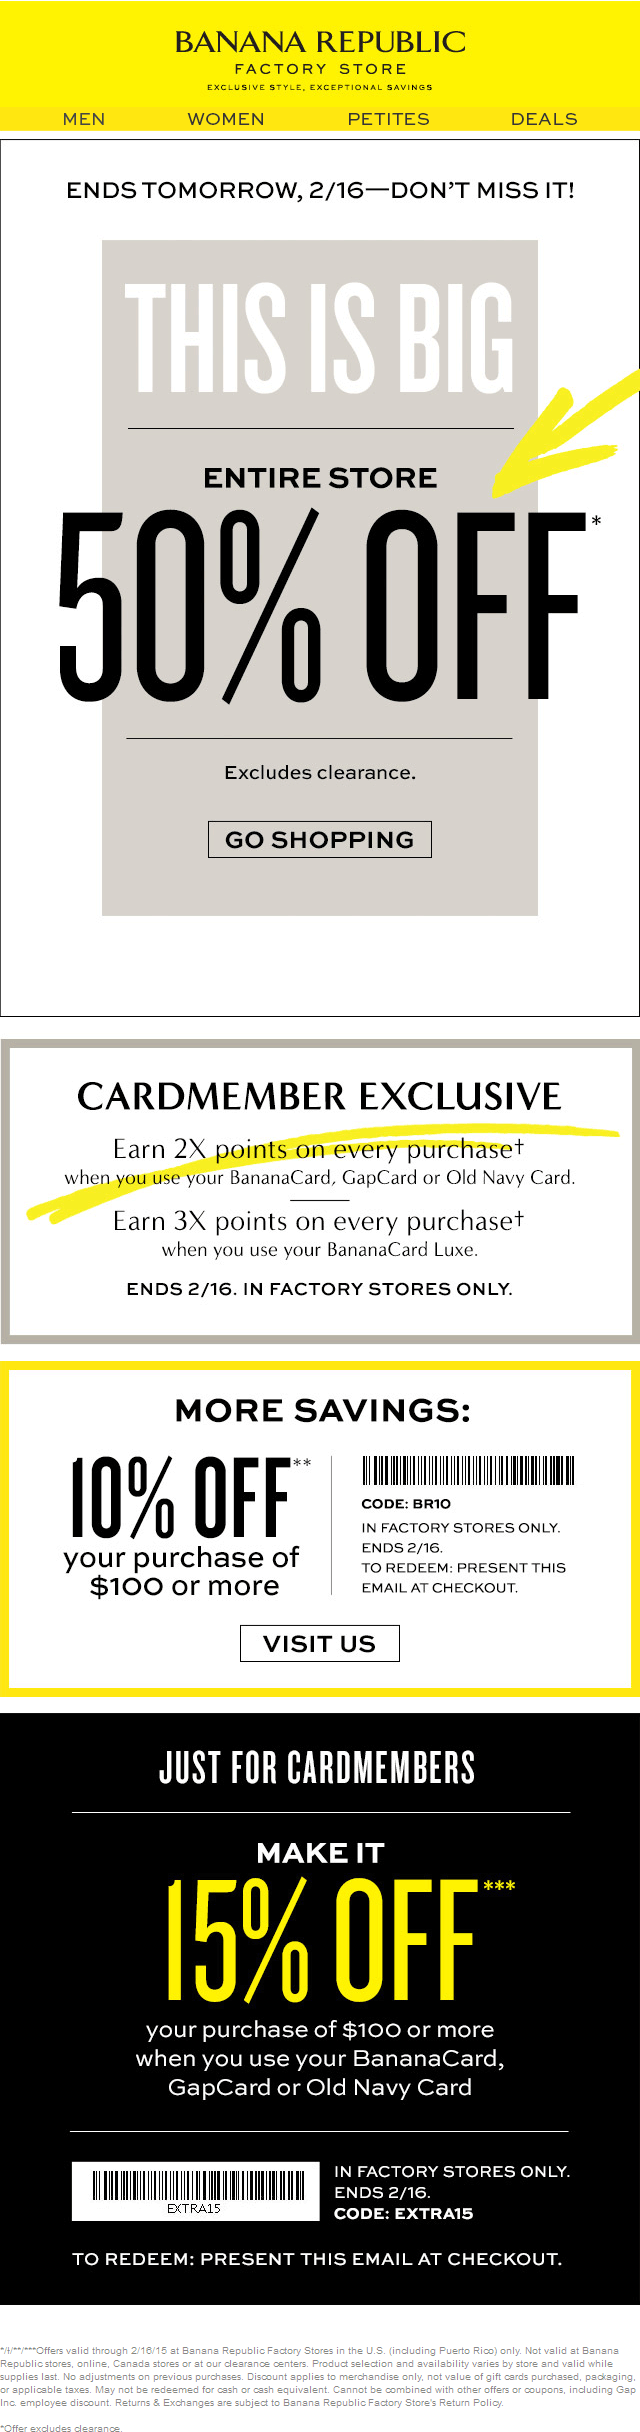 Banana Republic Factory Coupon November 2018 Everything is 50% off & more today at Banana Republic Factory stores